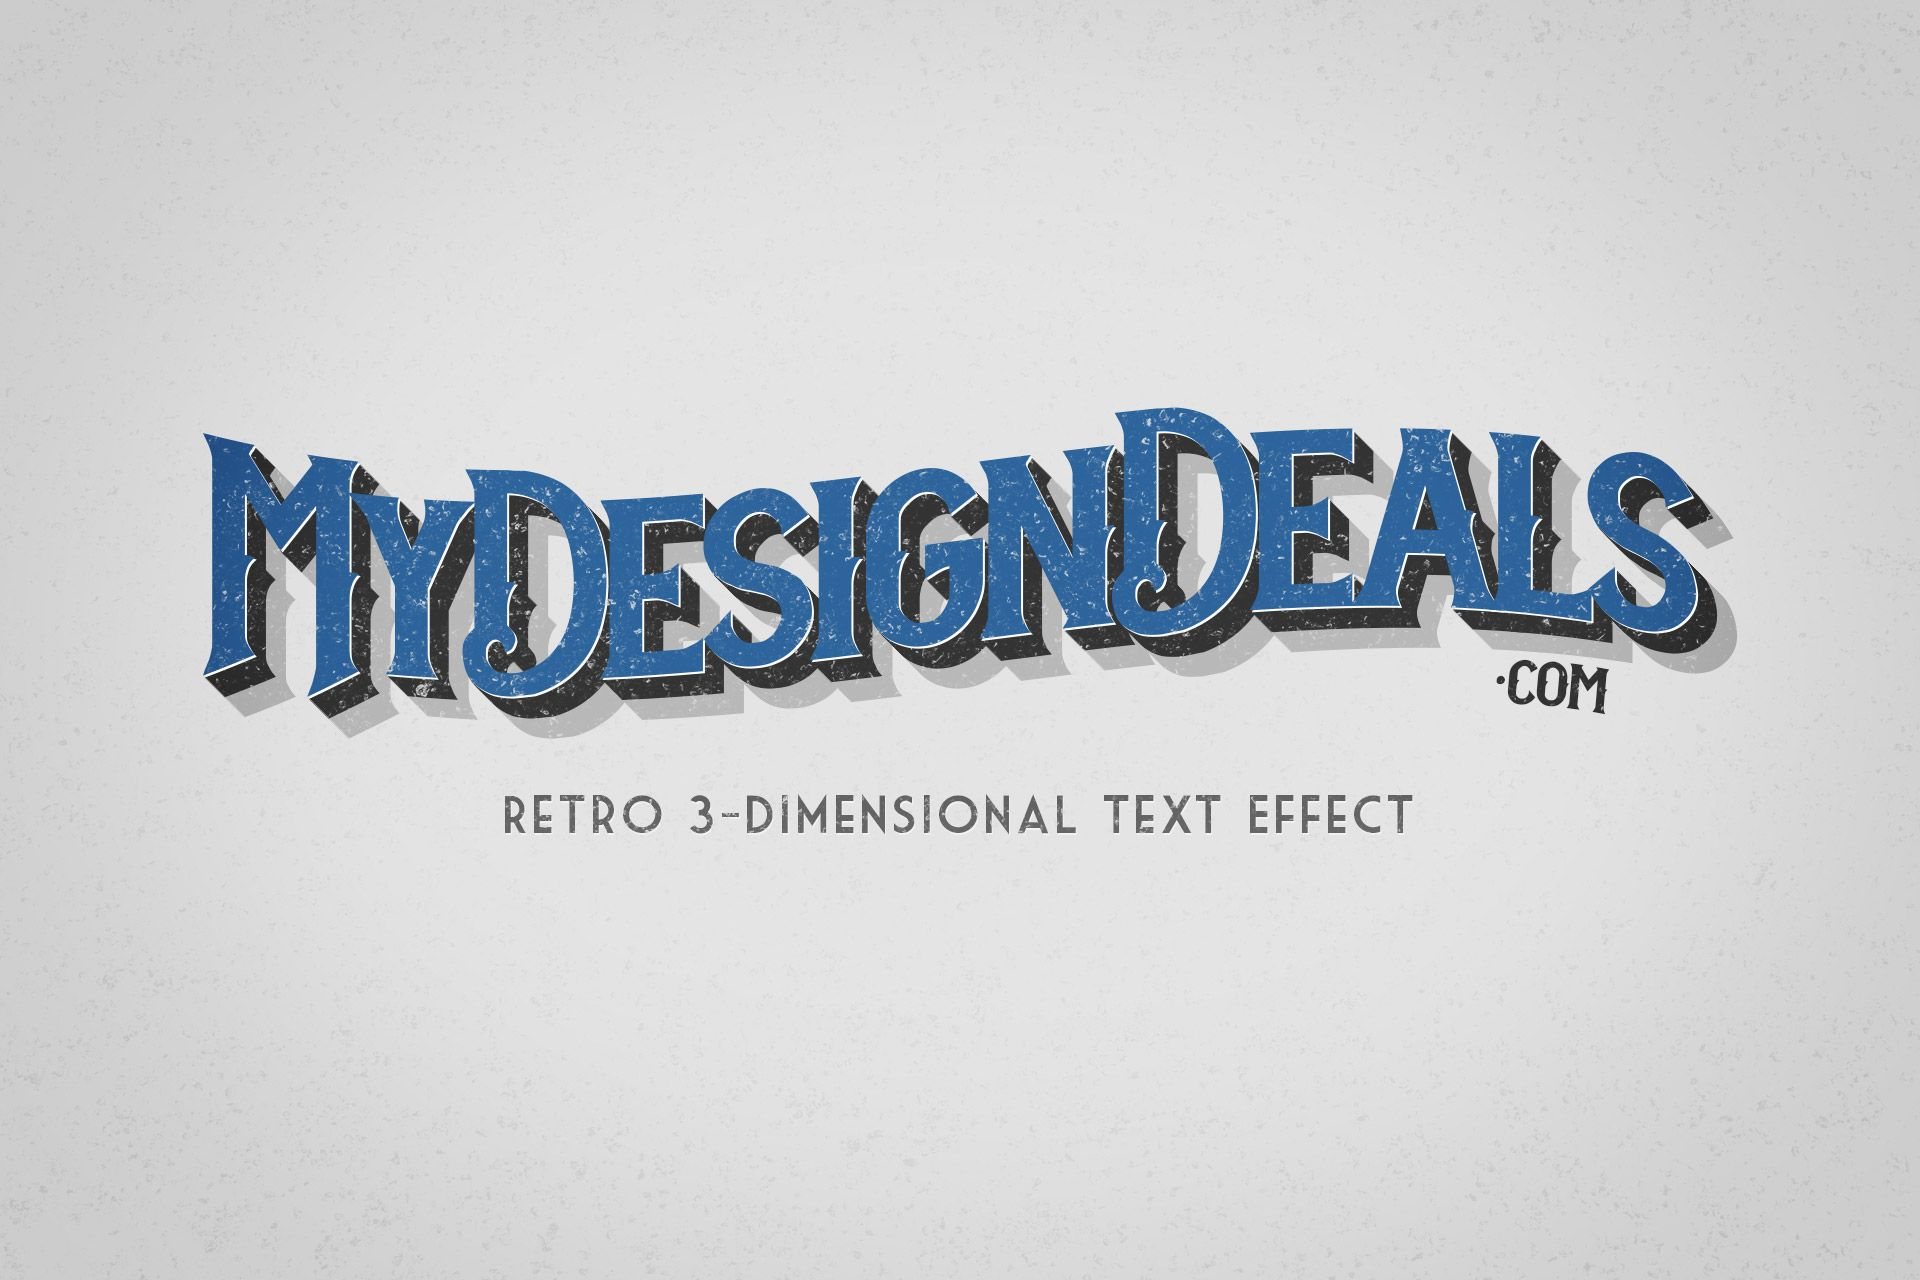 How to create a retro 3 dimensional text effect in photoshop retro 3 dimensional text effect photoshop tutorial from my design deals baditri Image collections